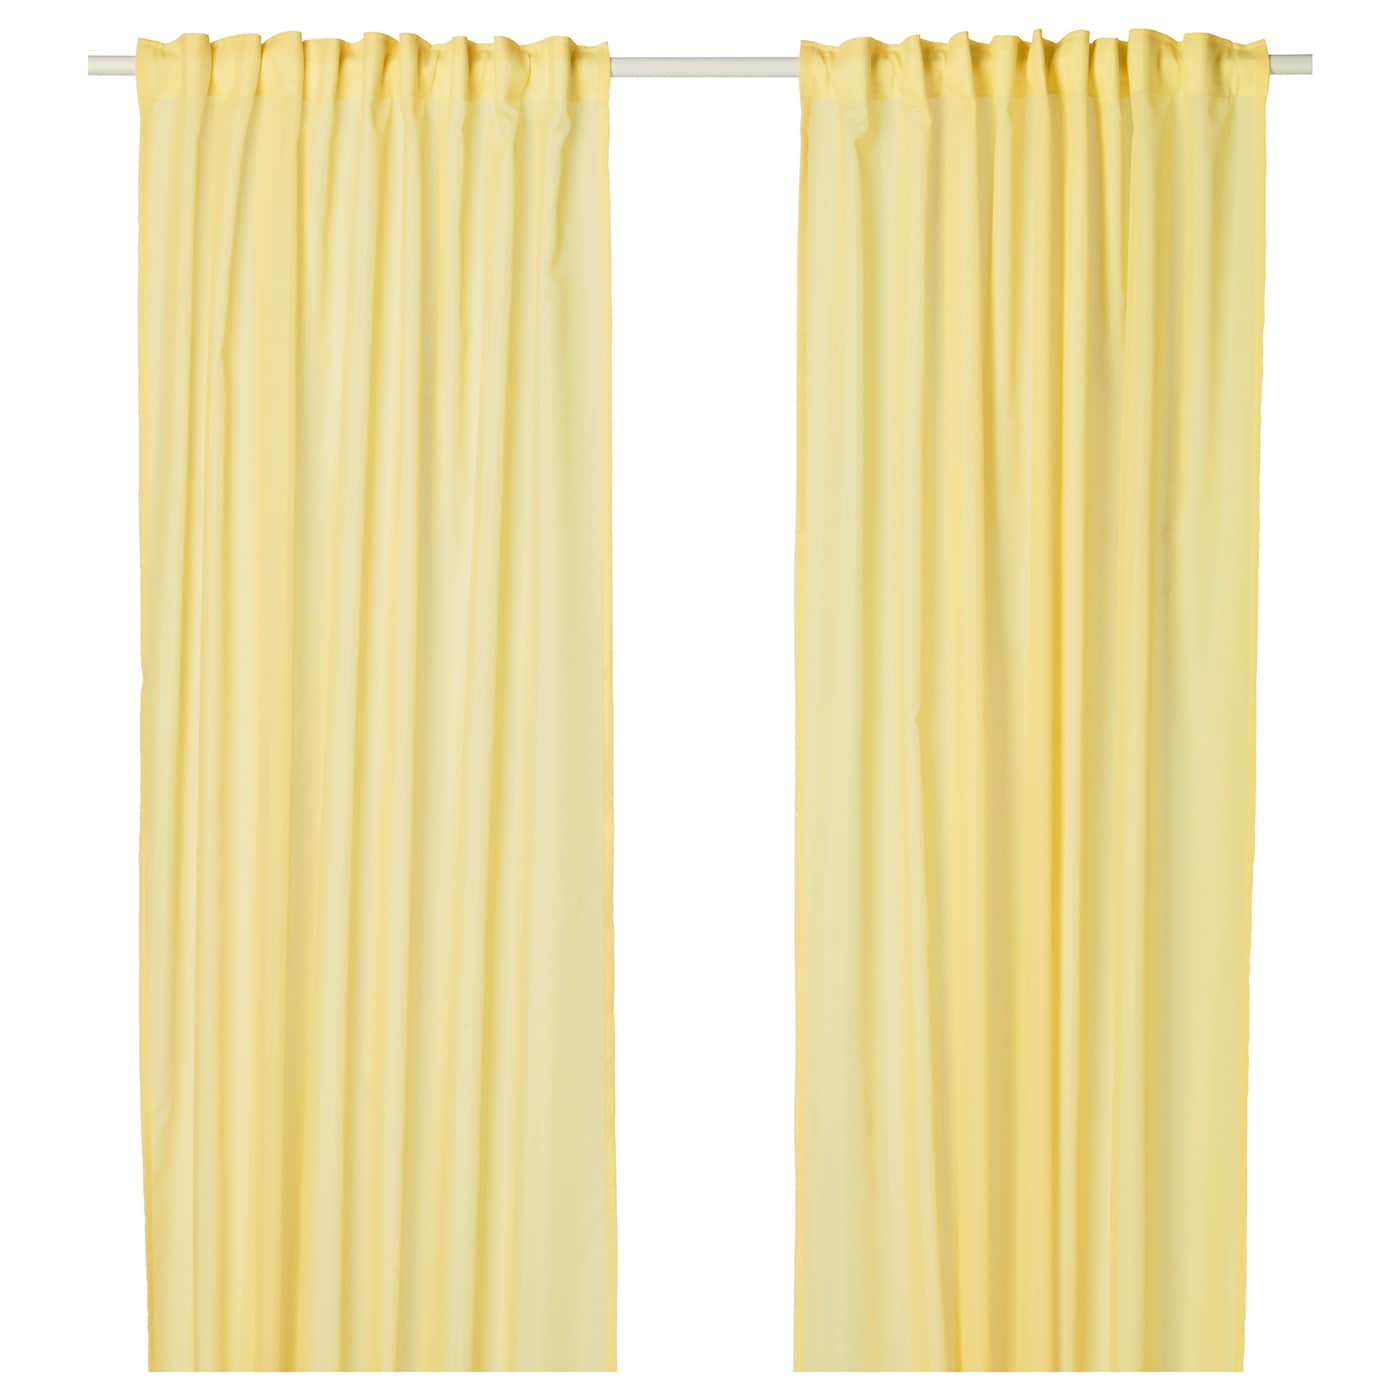 Curtains | Ready Made Curtains | IKEA for Yellow Curtains Png  131fsj